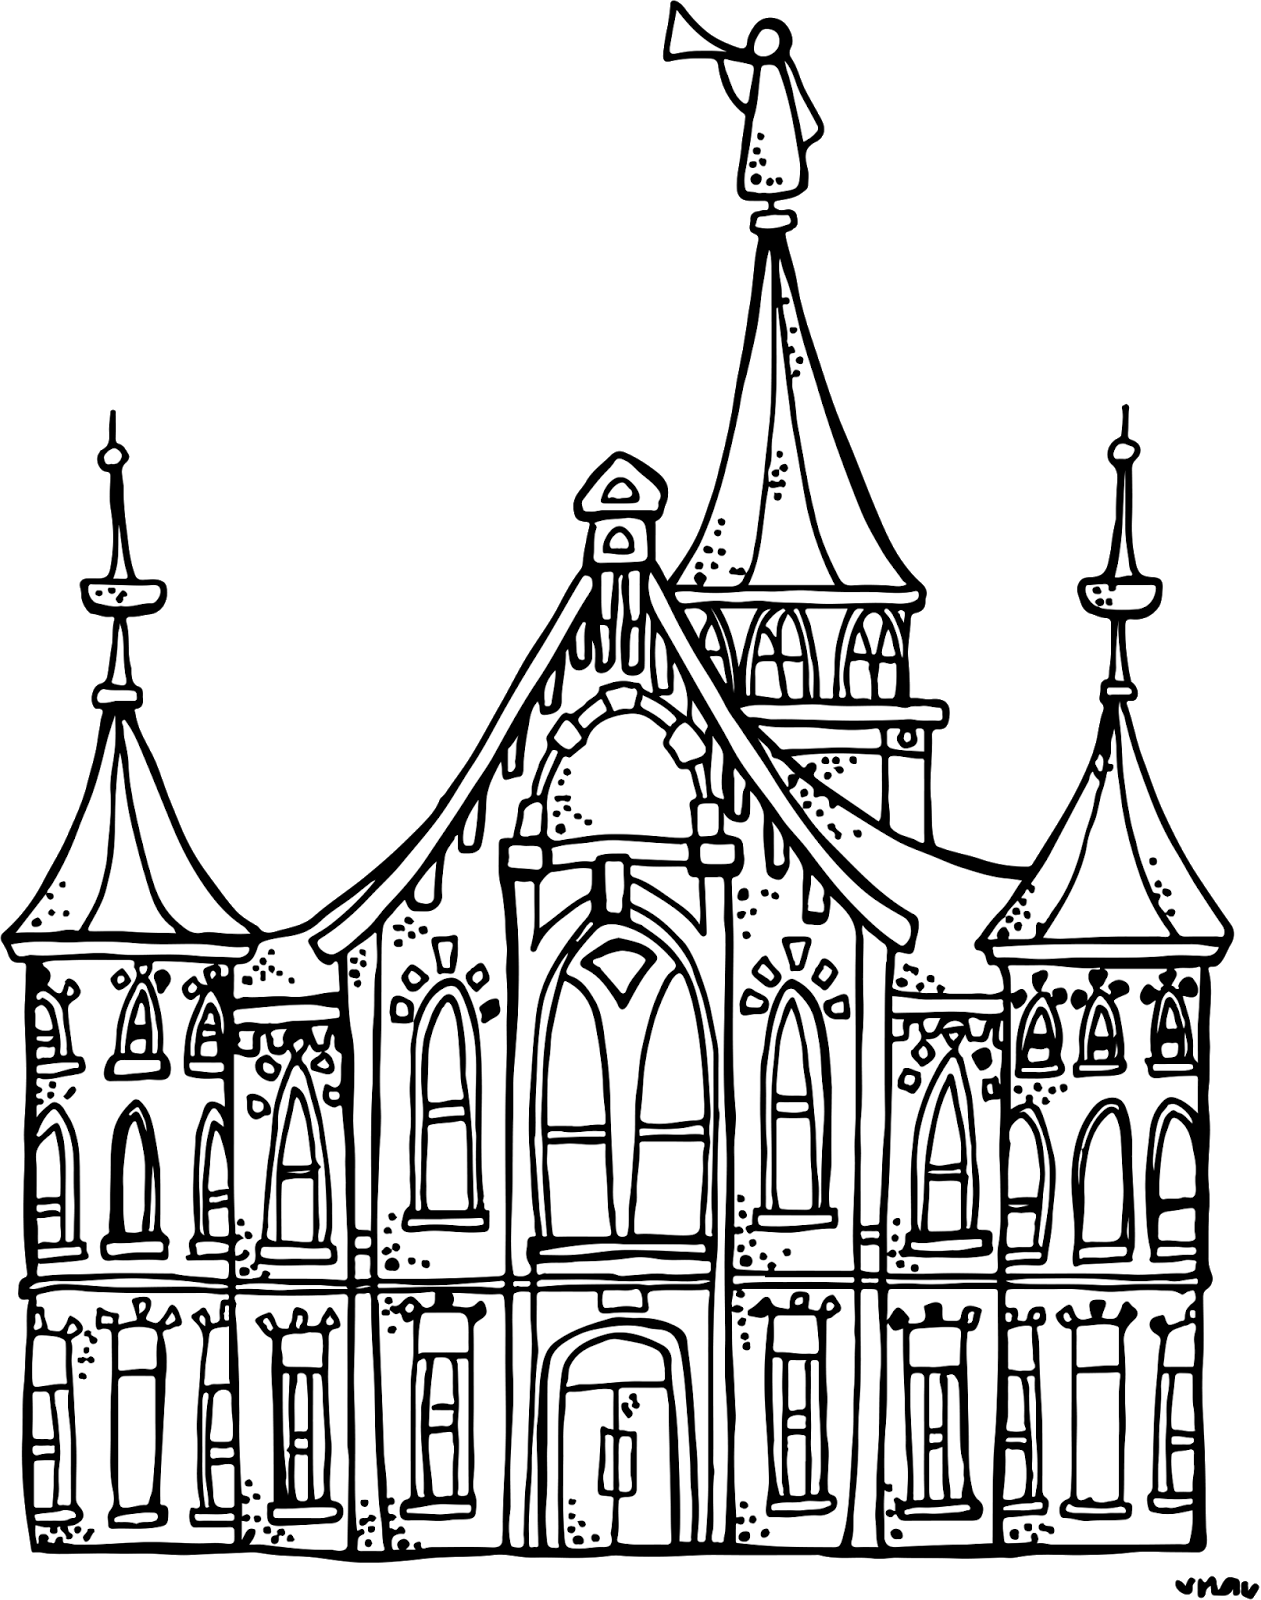 Medieval city at getdrawings. Lds clipart drawing